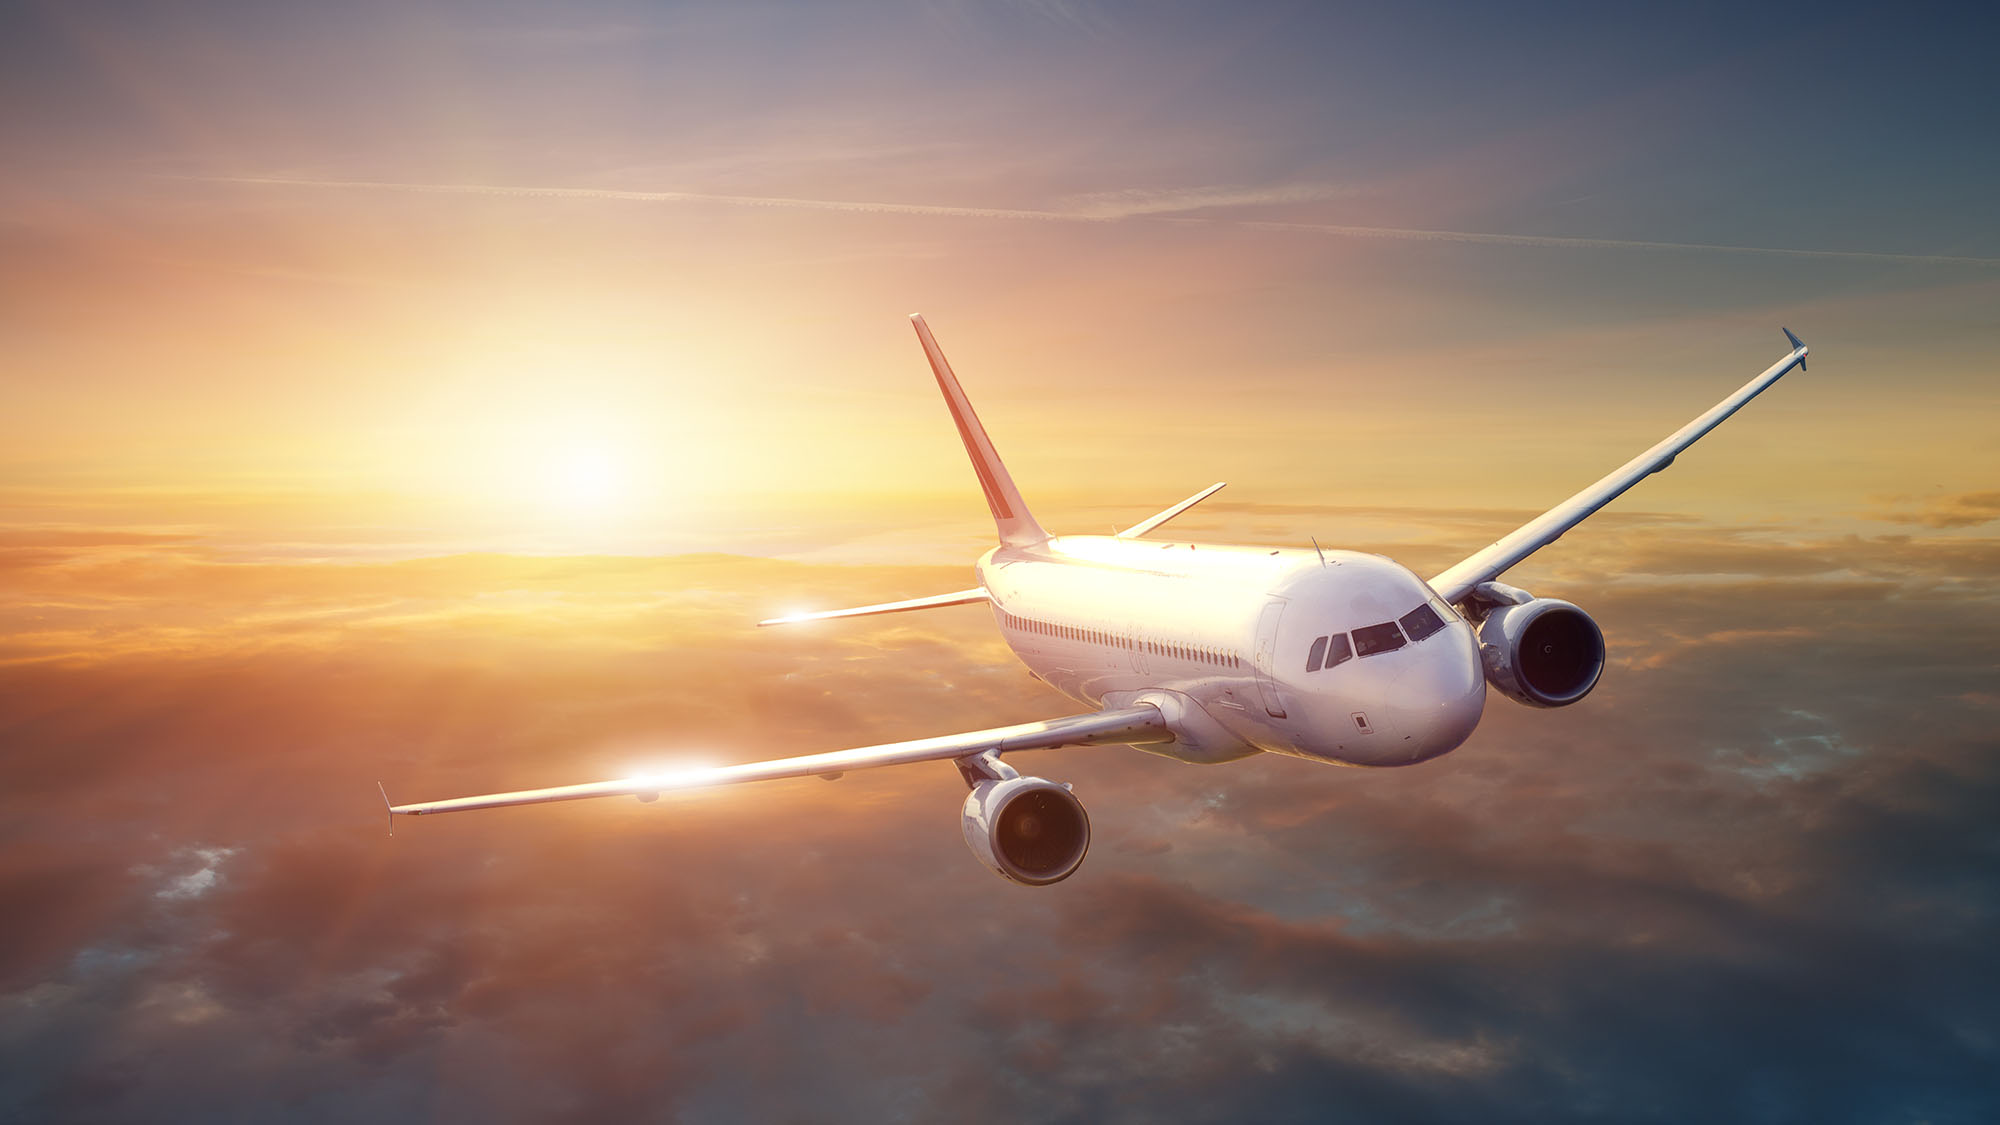 The world's 10 best airlines have been announced for 2015